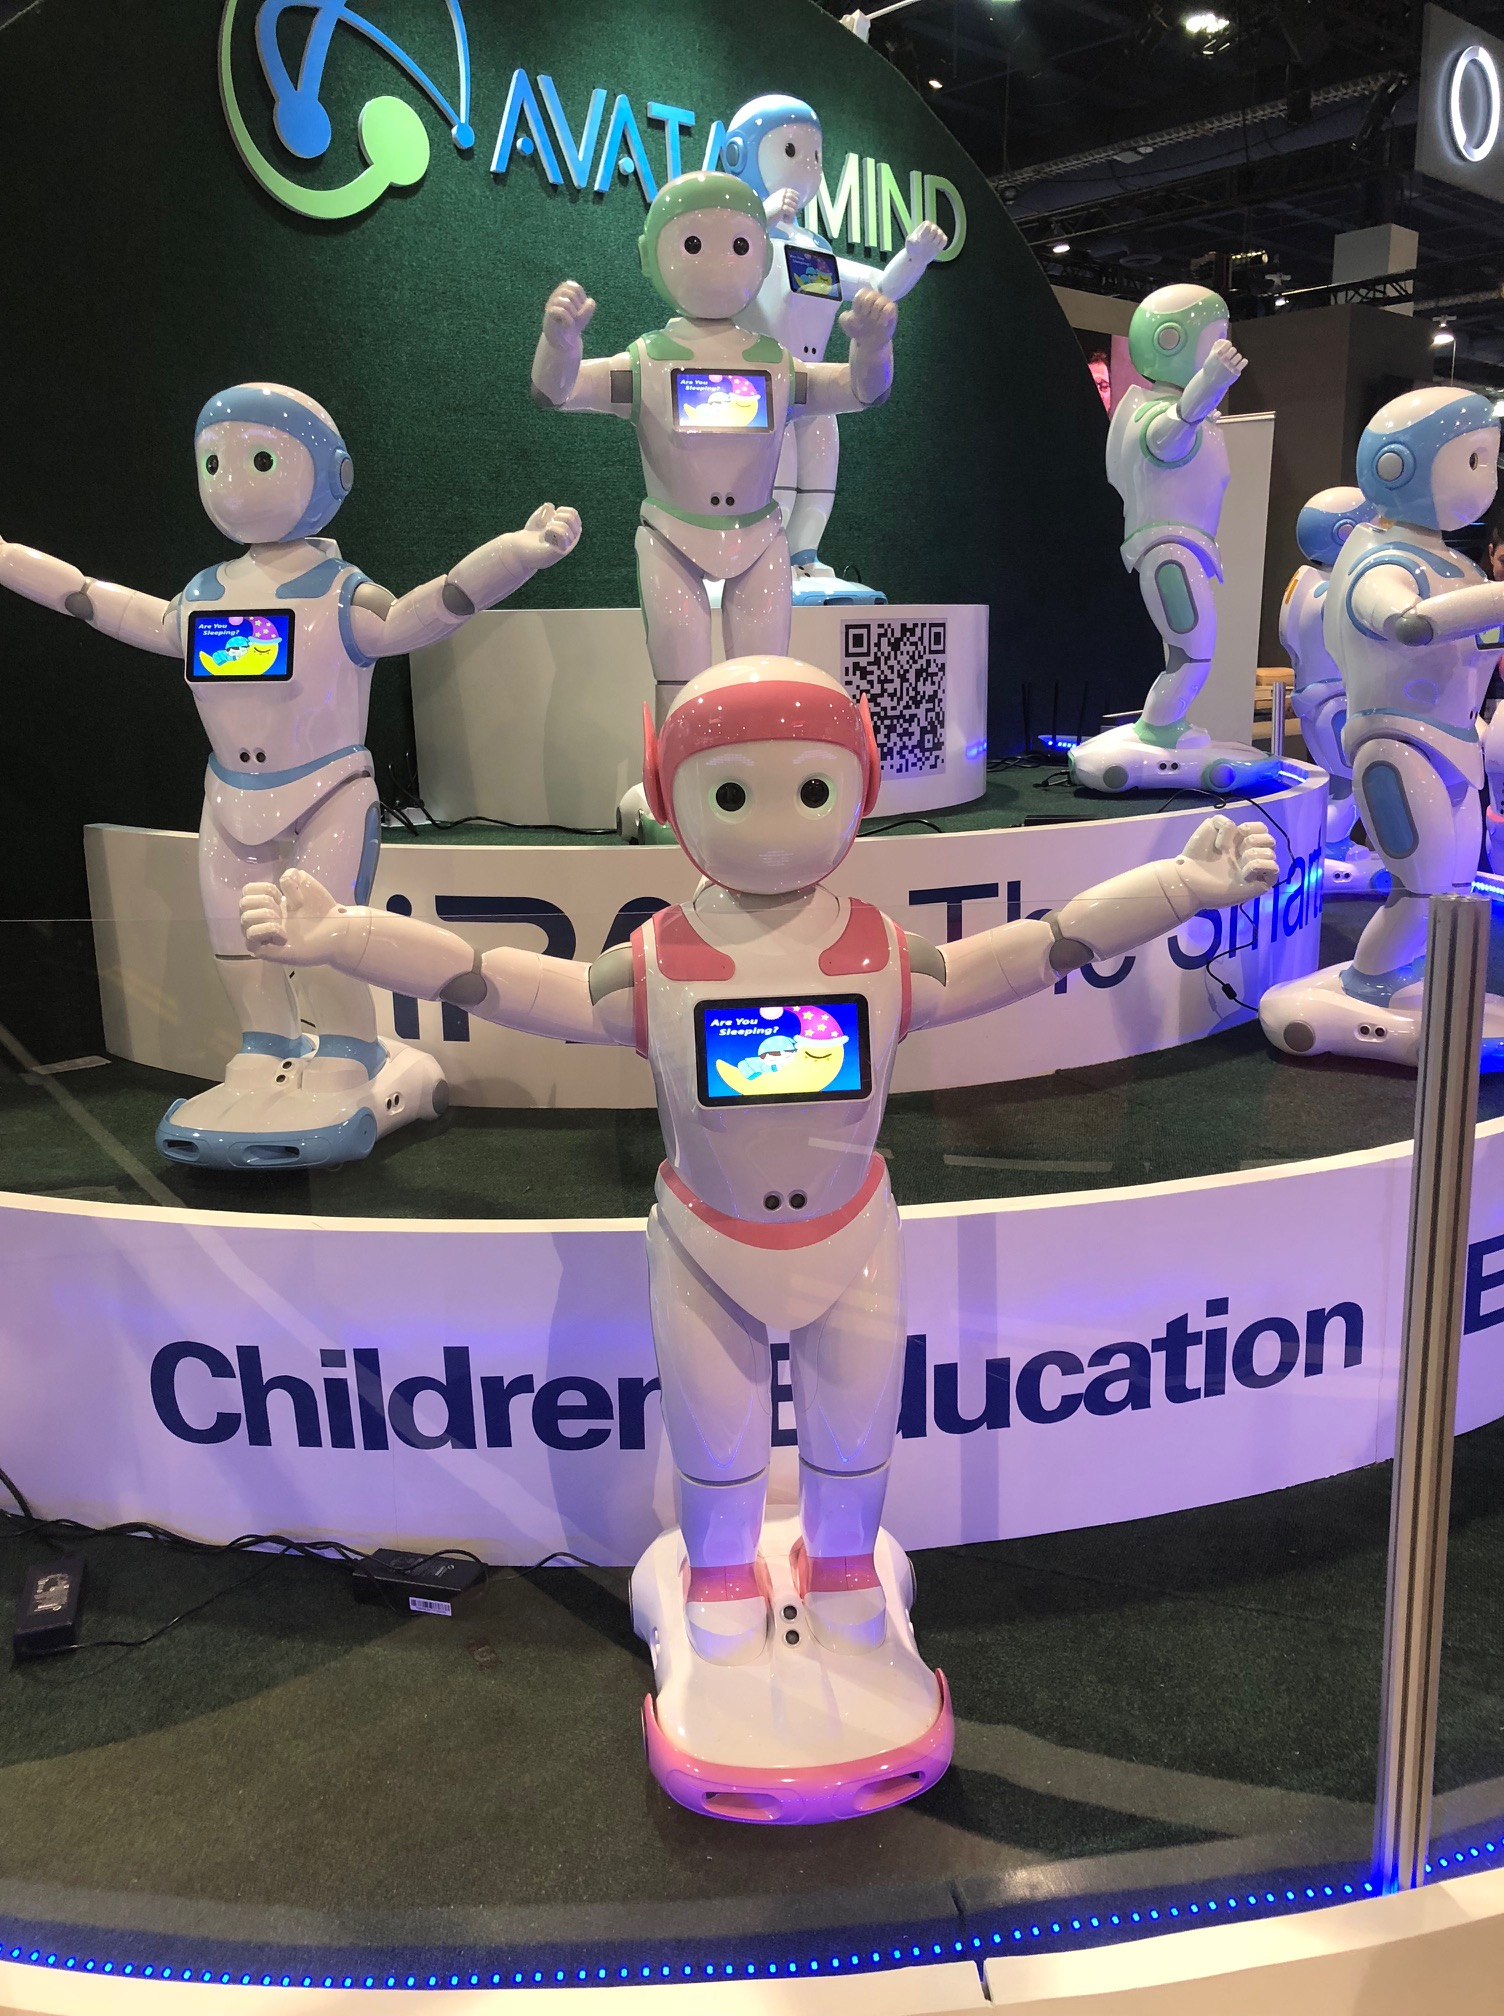 The iPal robot, shown at CES 2018, can be used as a companion for children and the elderly.